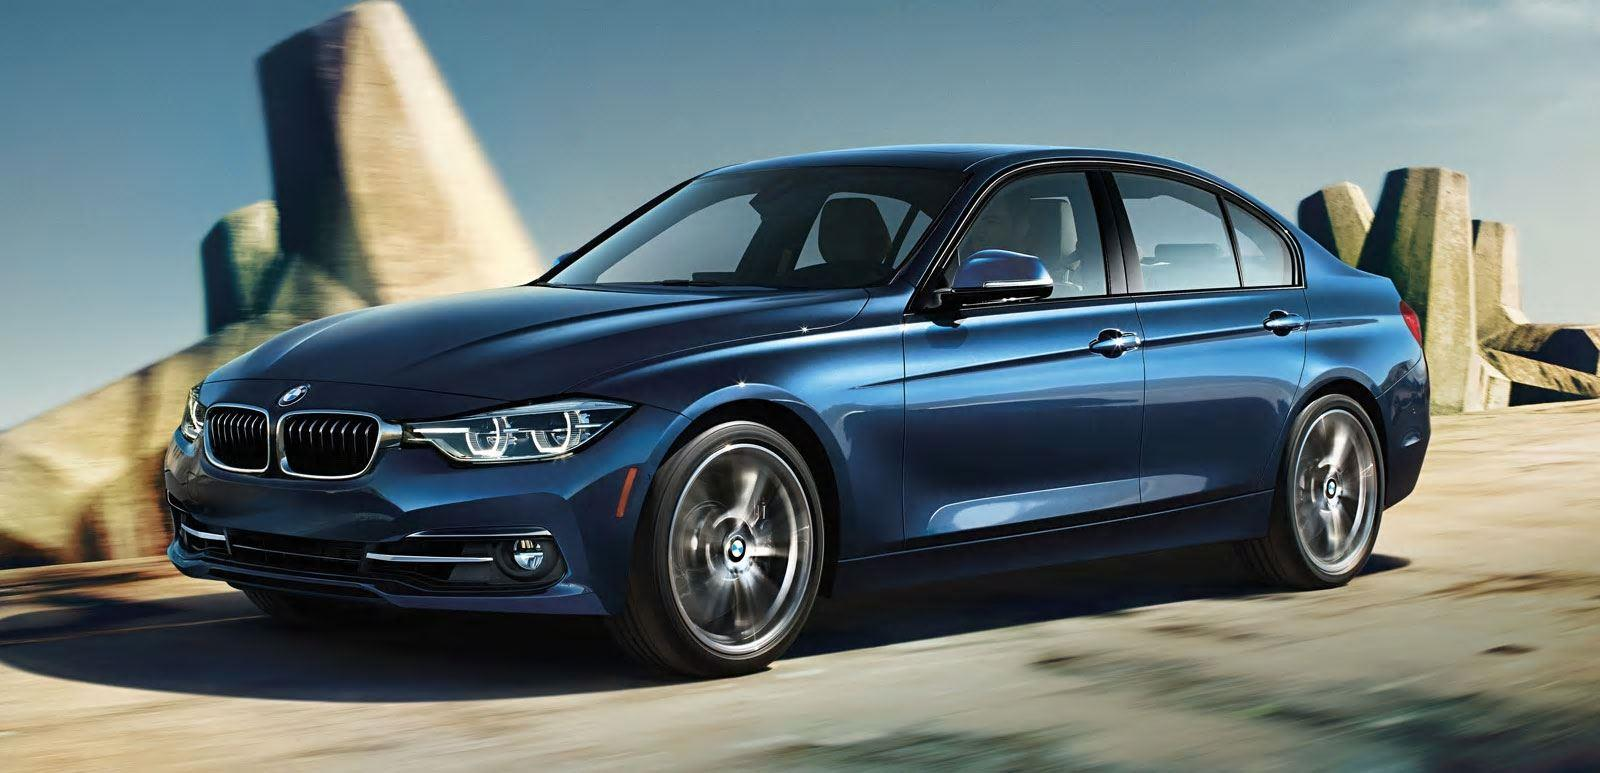 2018 Bmw 3 Series News And Information Conceptcarz Com